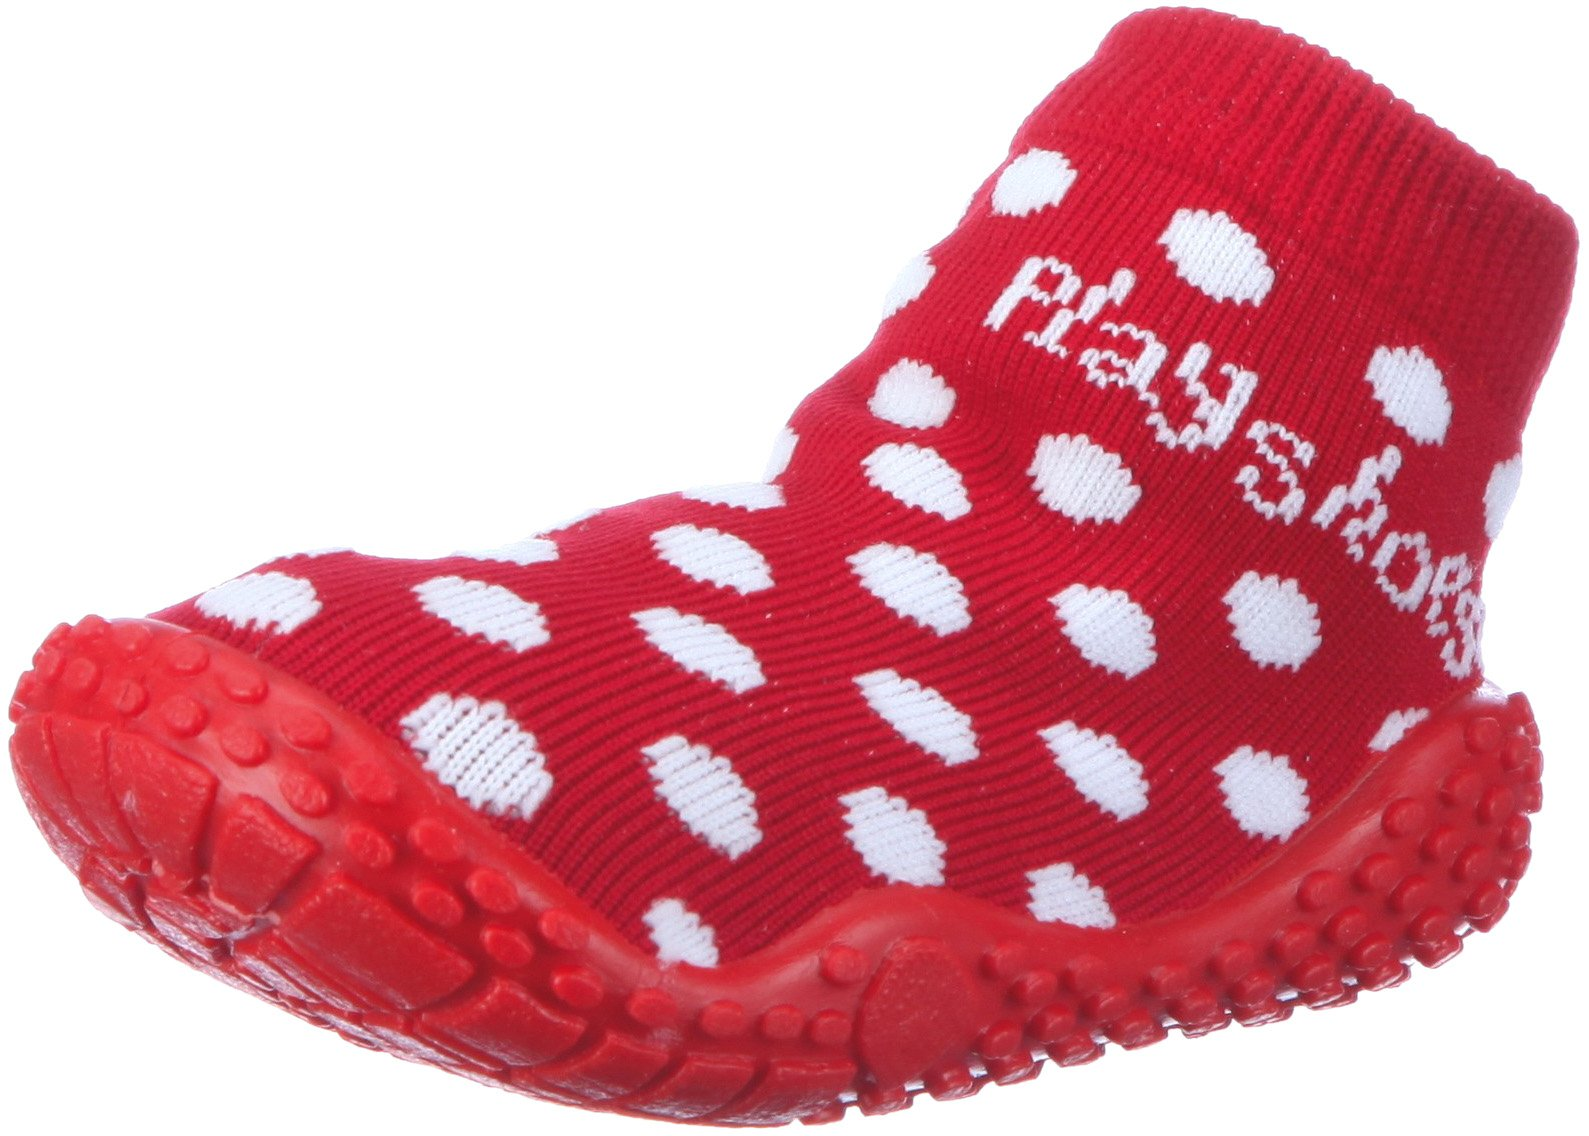 Playshoes Girls Dots Collection Rubber Aqua Swim/Beach Sock Shoes (7 M US Toddler) by Playshoes (Image #1)